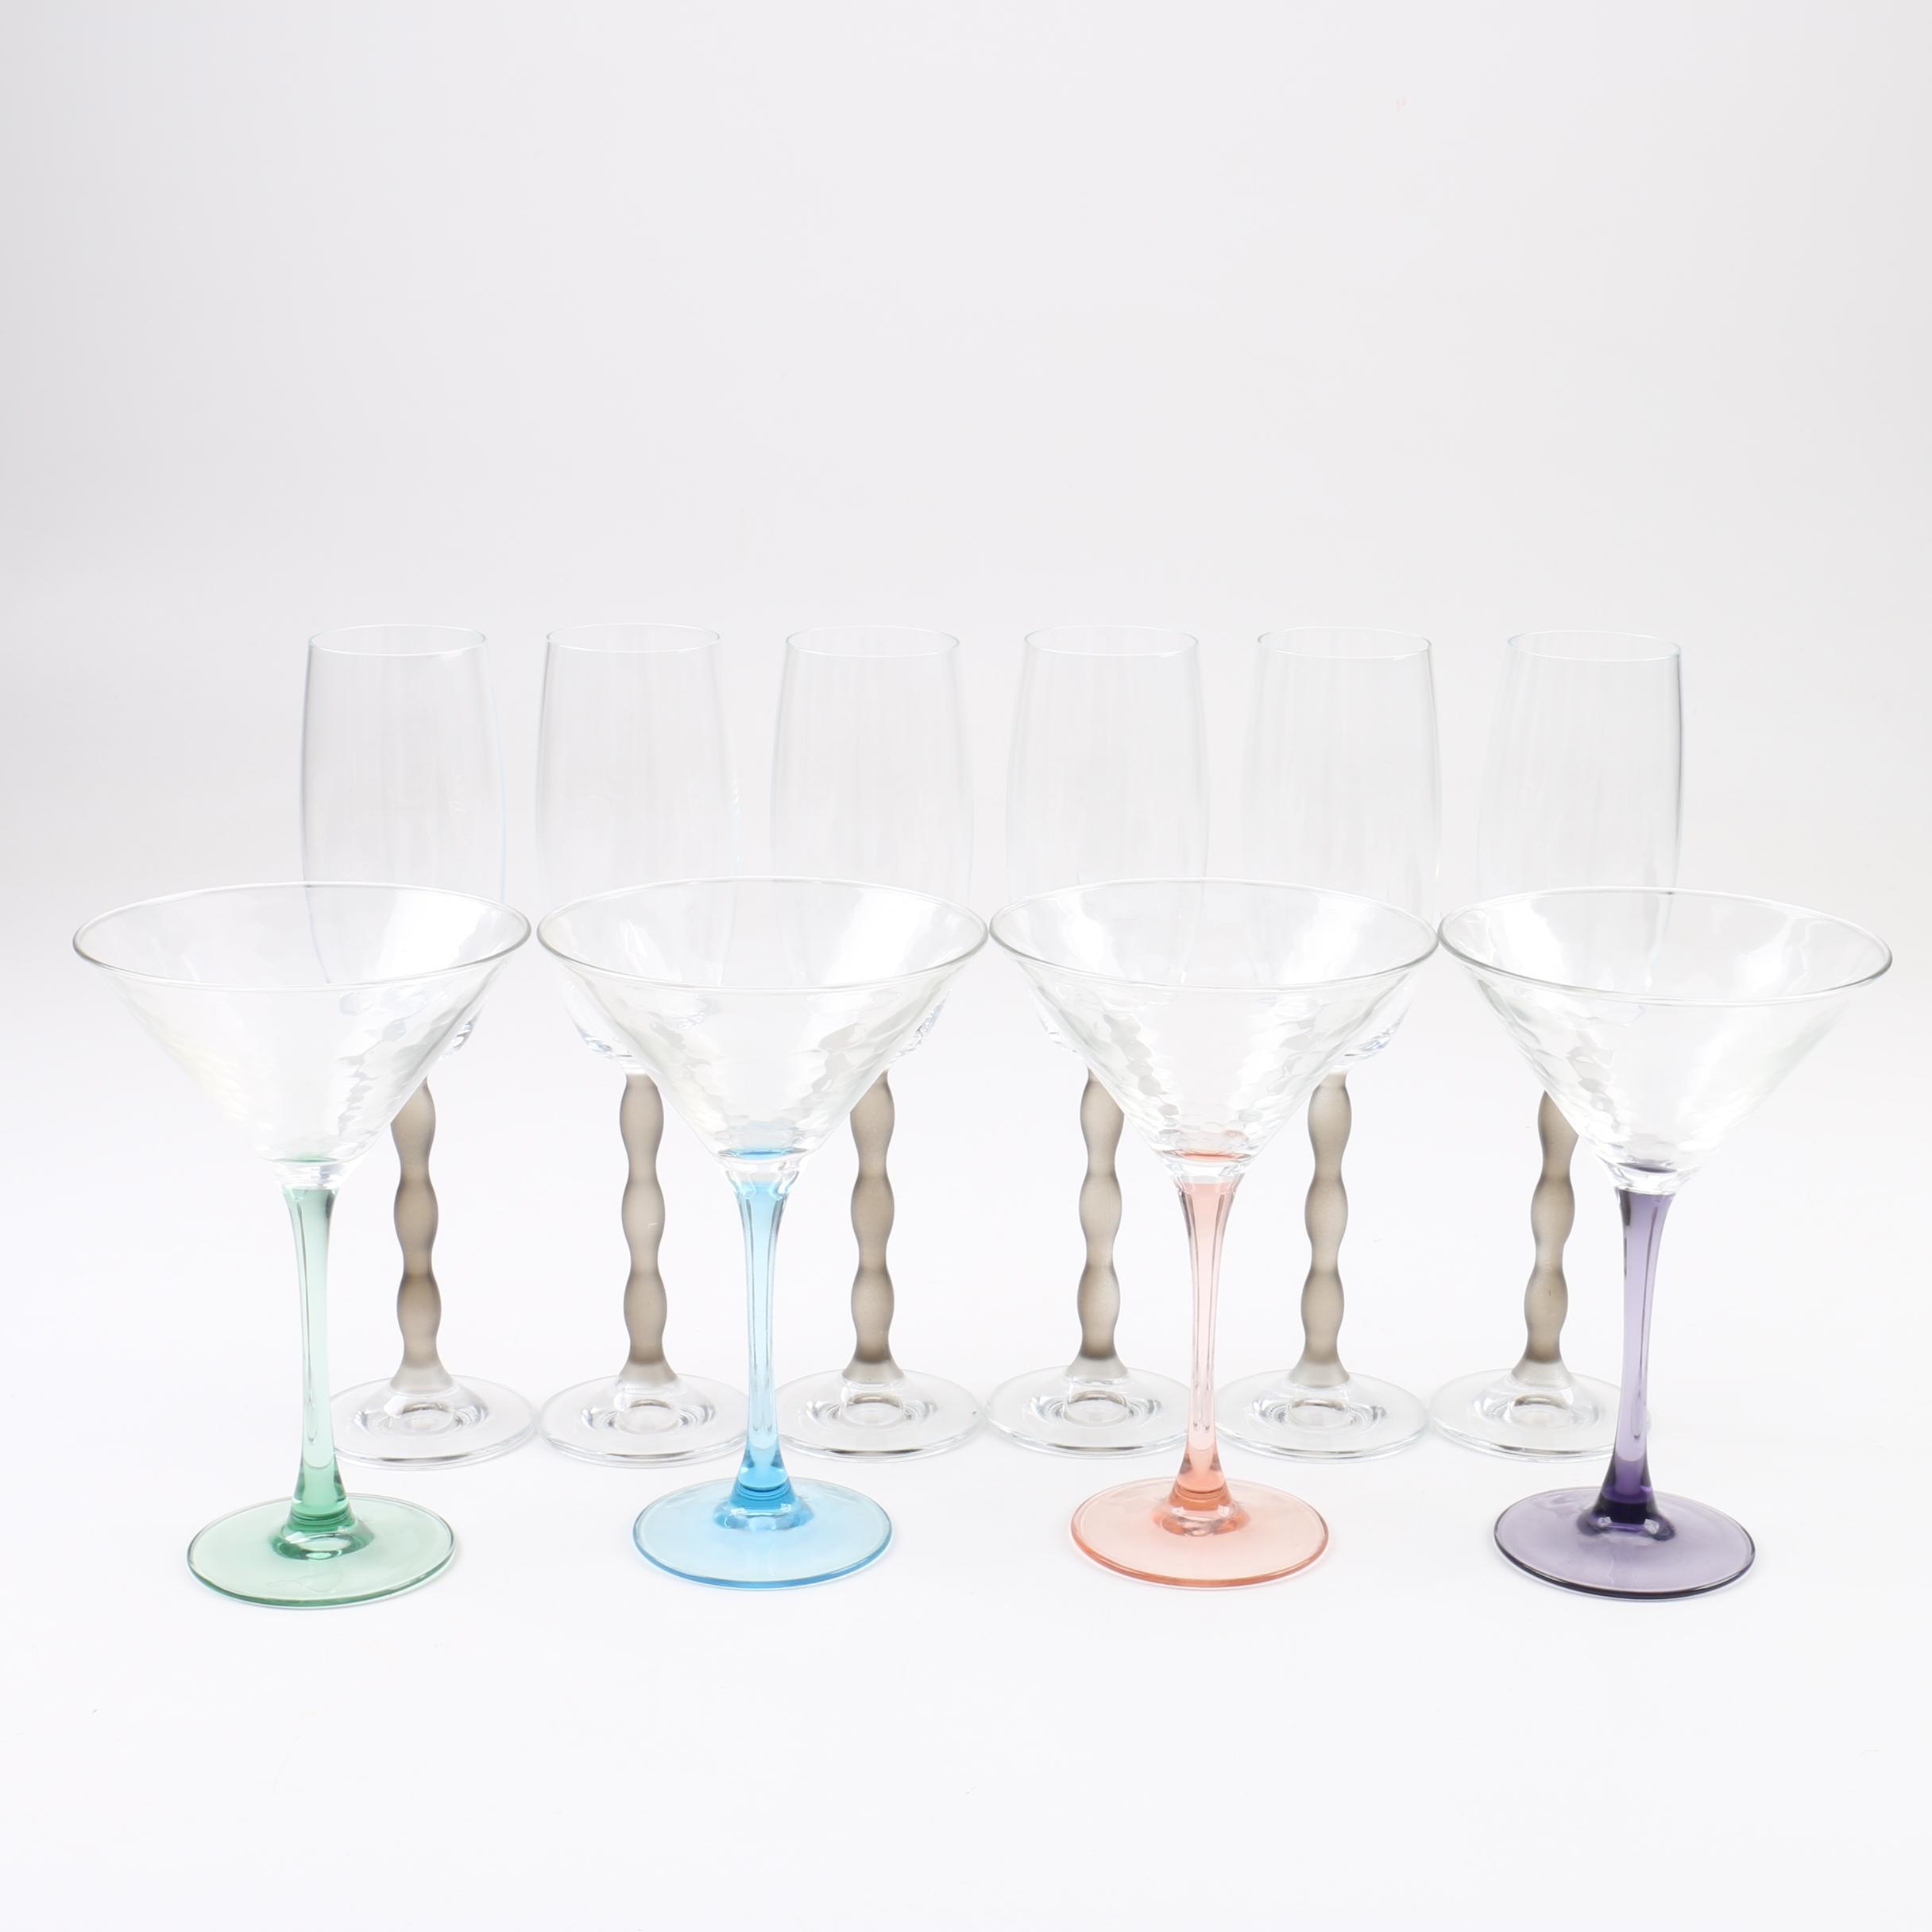 Champagne Flutes and Martini Glasses with Colorful Stems